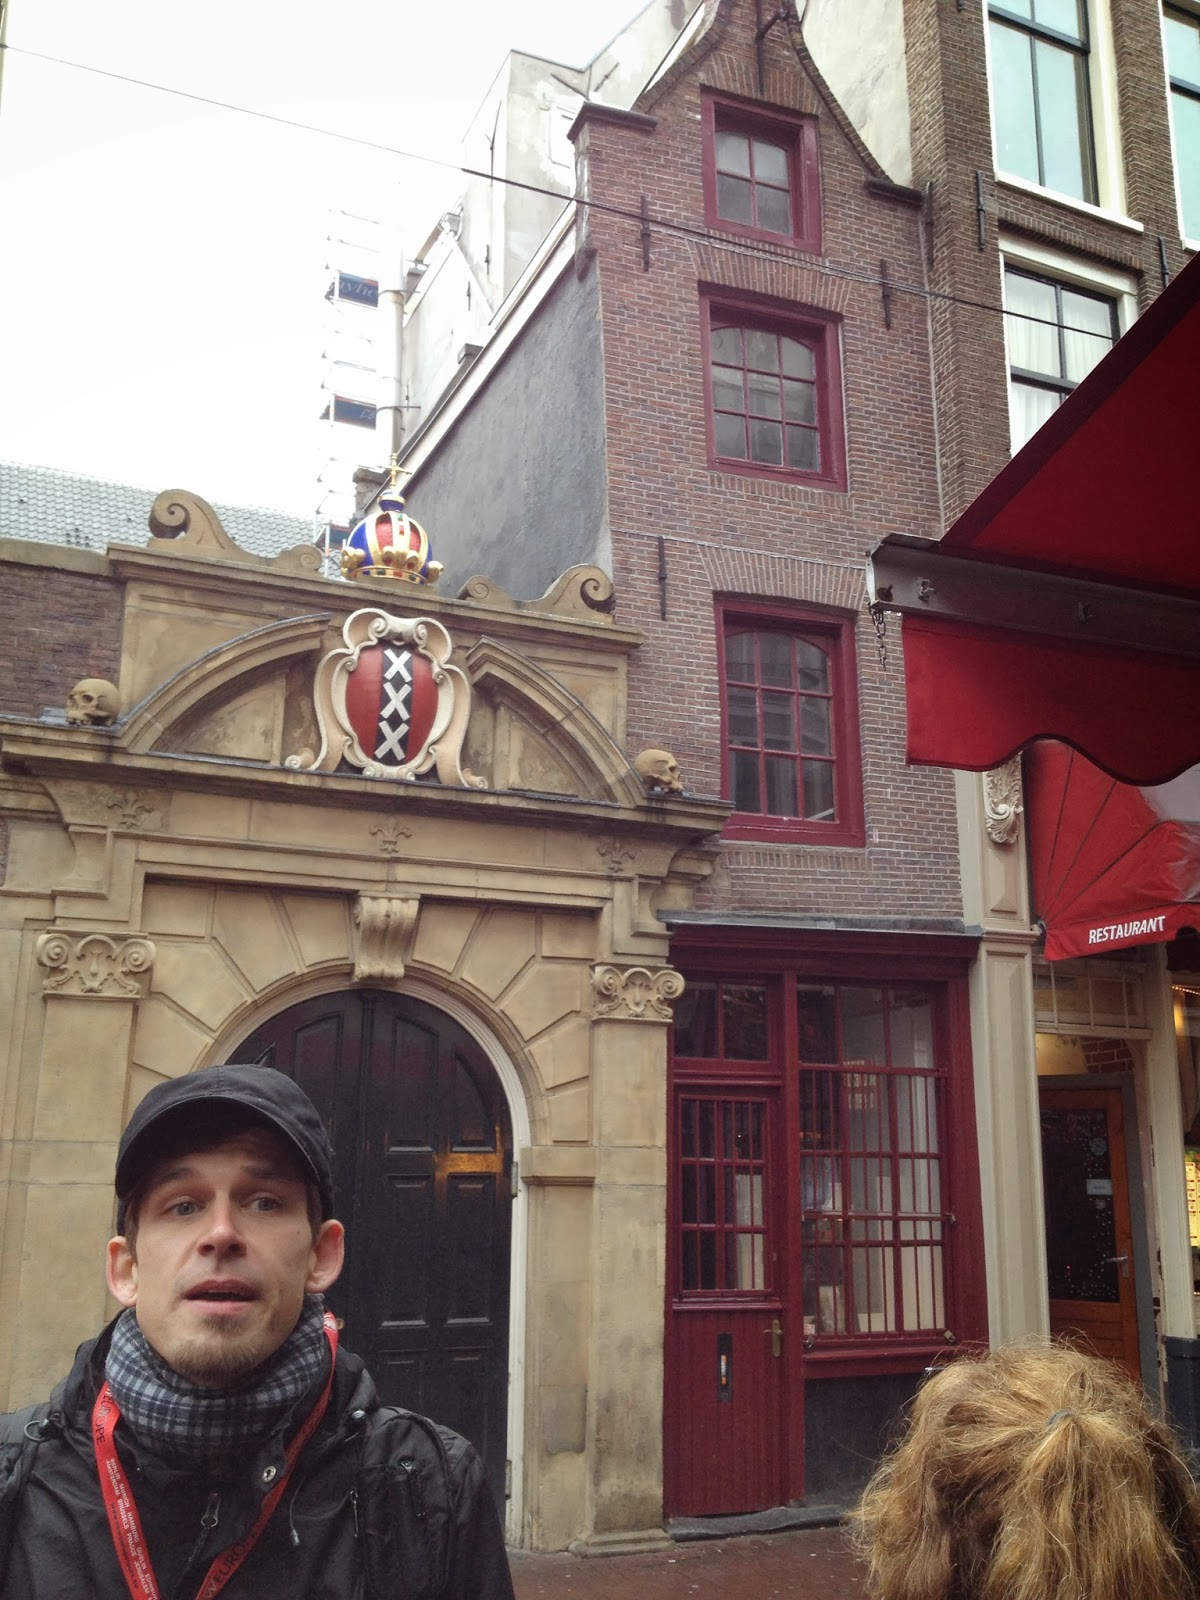 Amsterdam - Our tour guide shows us the smallest house in Amsterdam